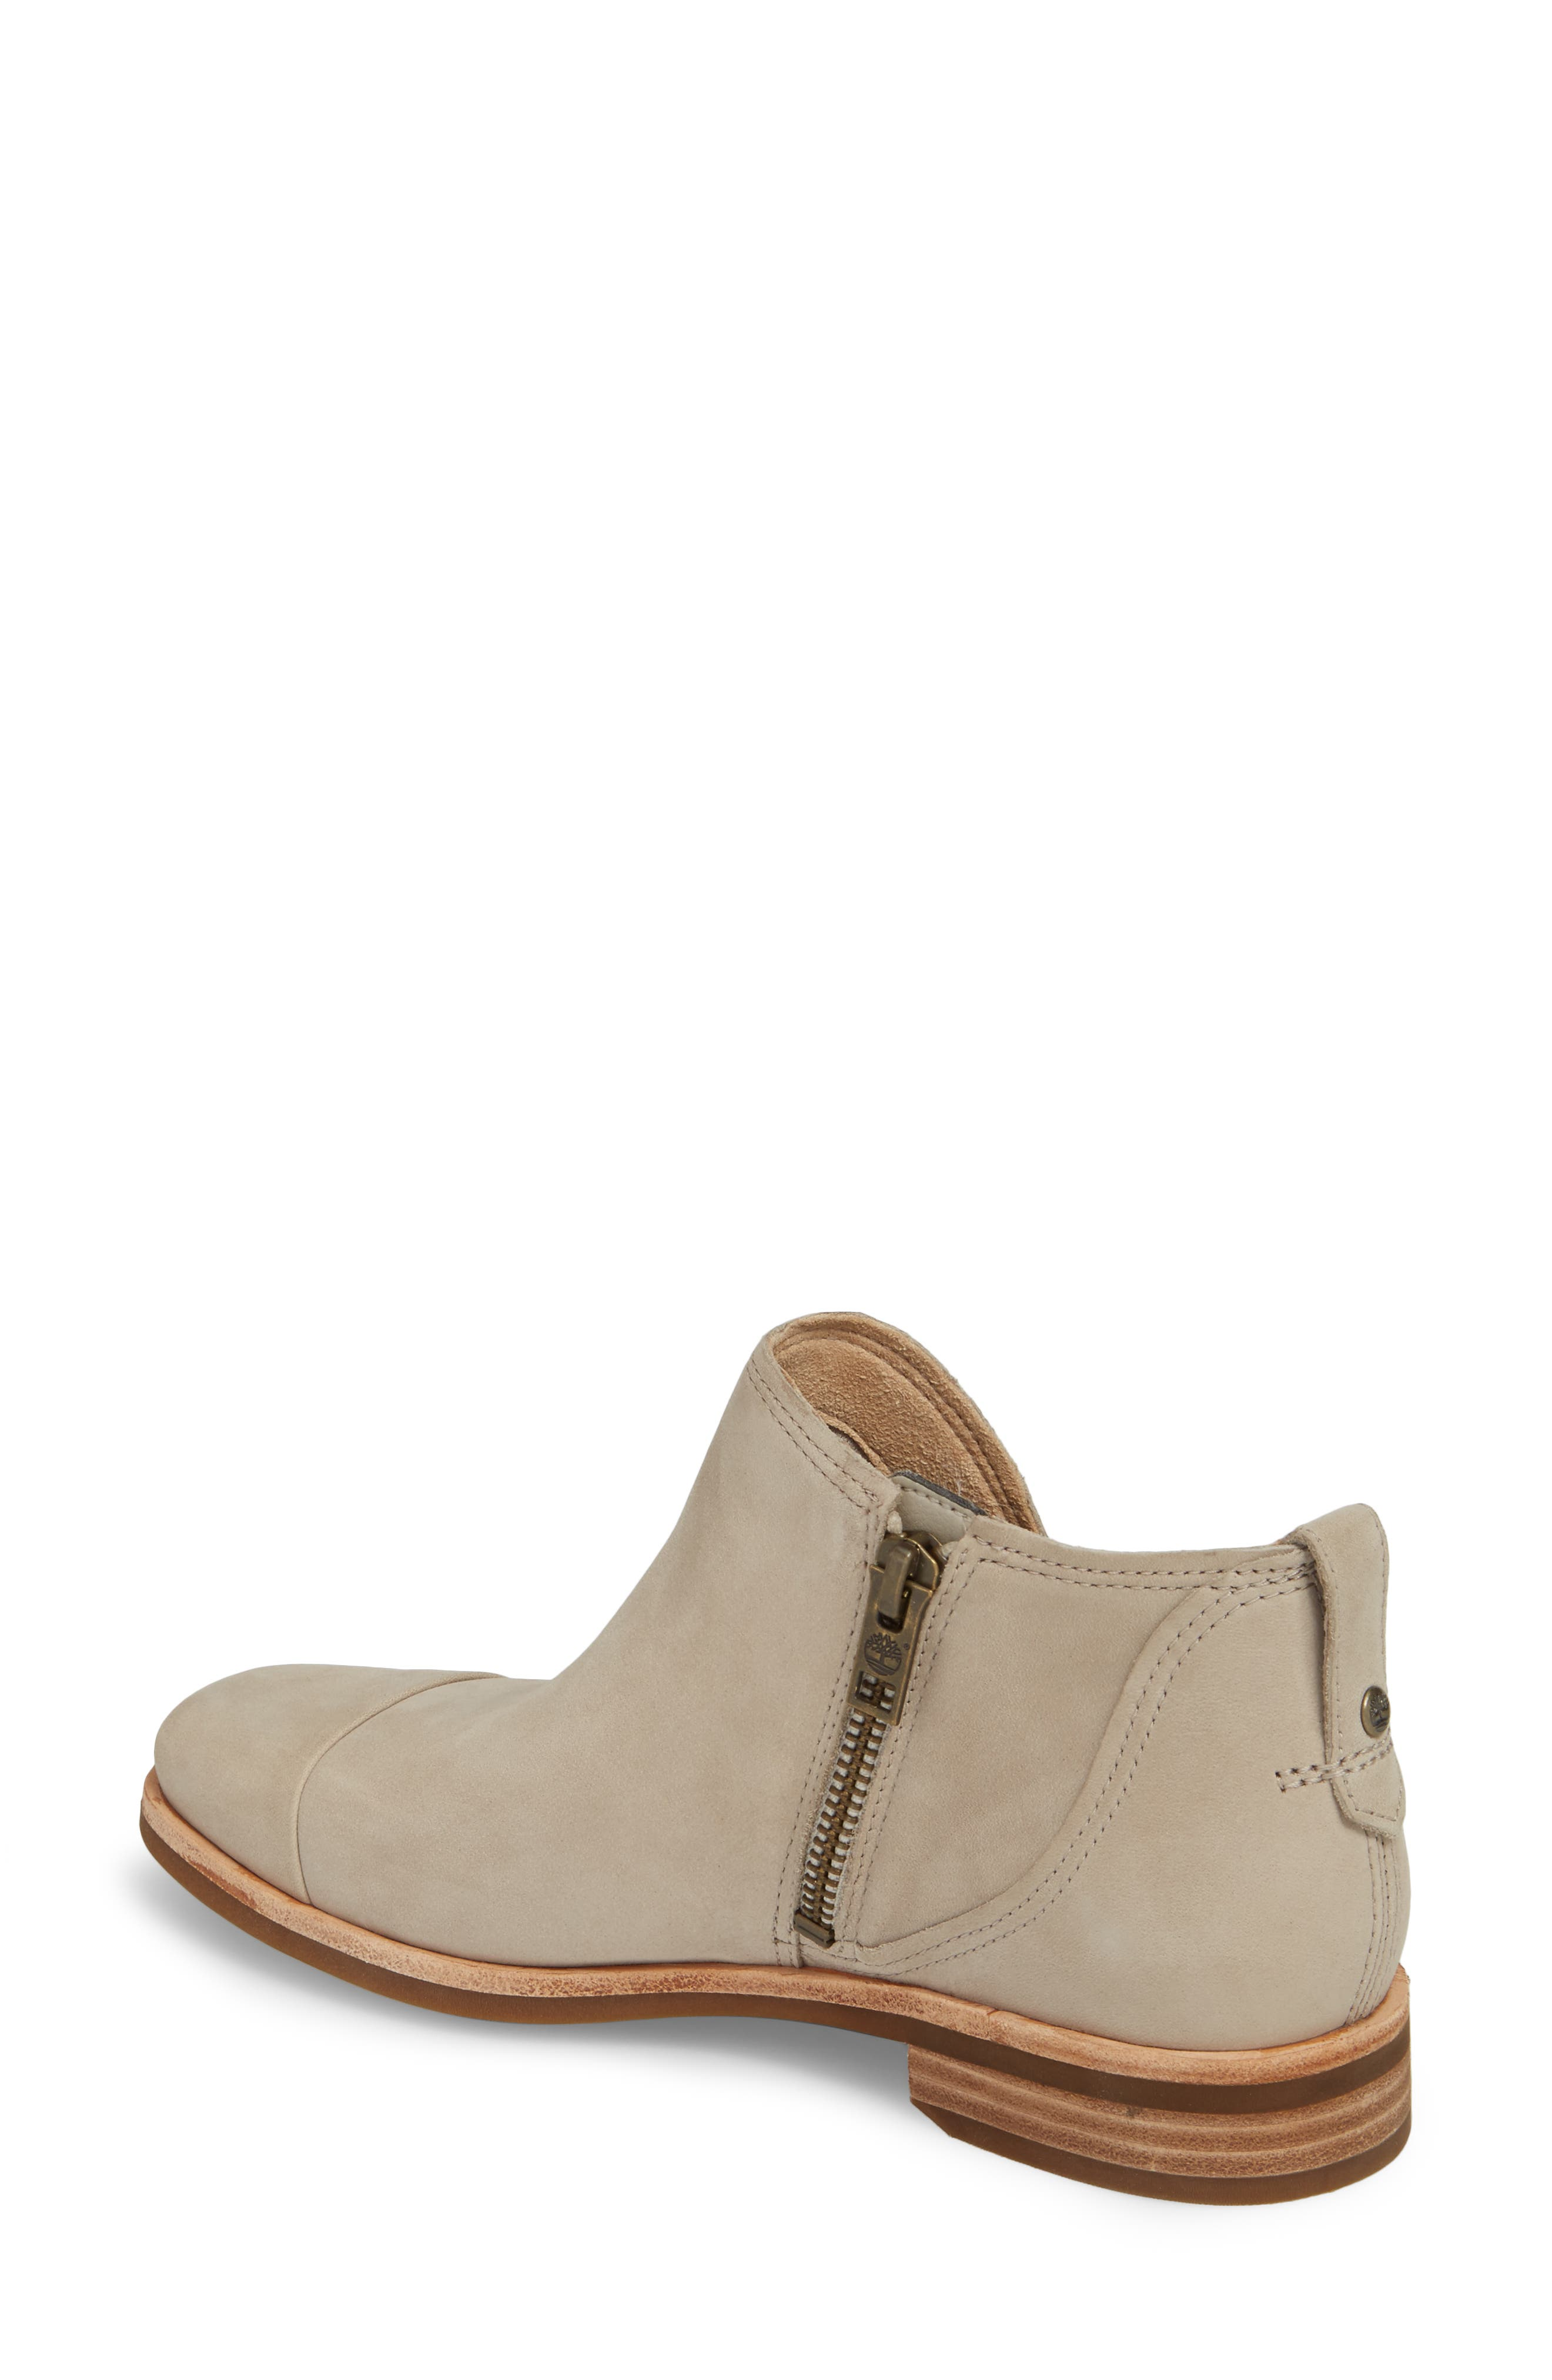 Somers Falls Short Ankle Bootie,                             Alternate thumbnail 2, color,                             Light Taupe Nubuck Leather